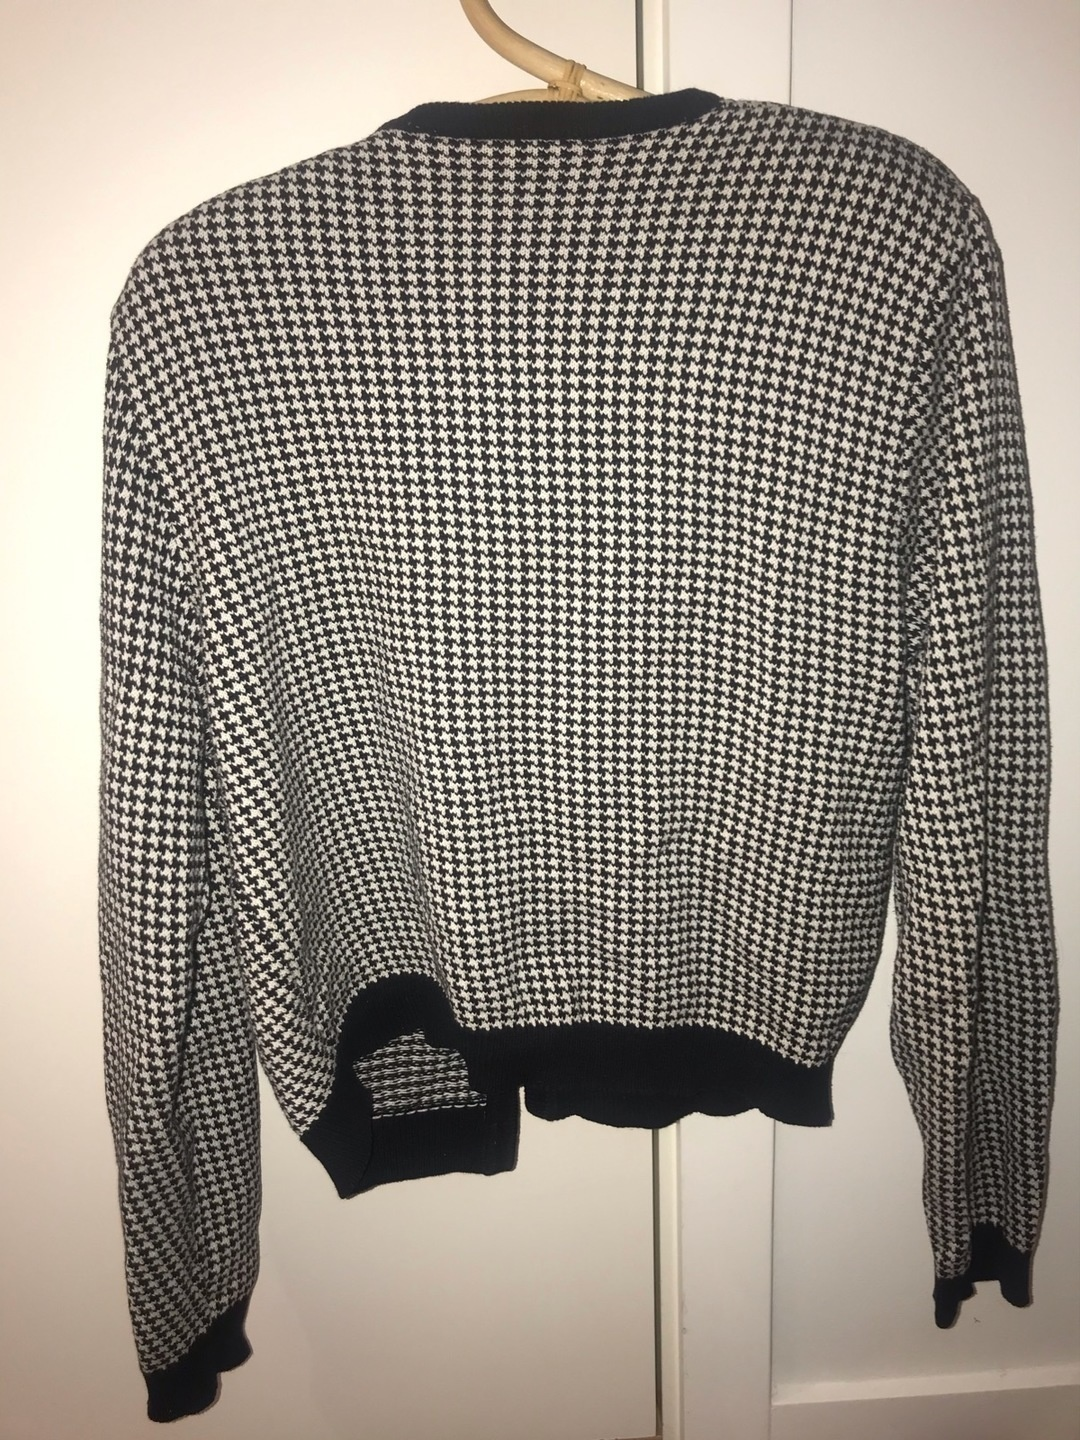 Women's jumpers & cardigans - NORDSTROM photo 2